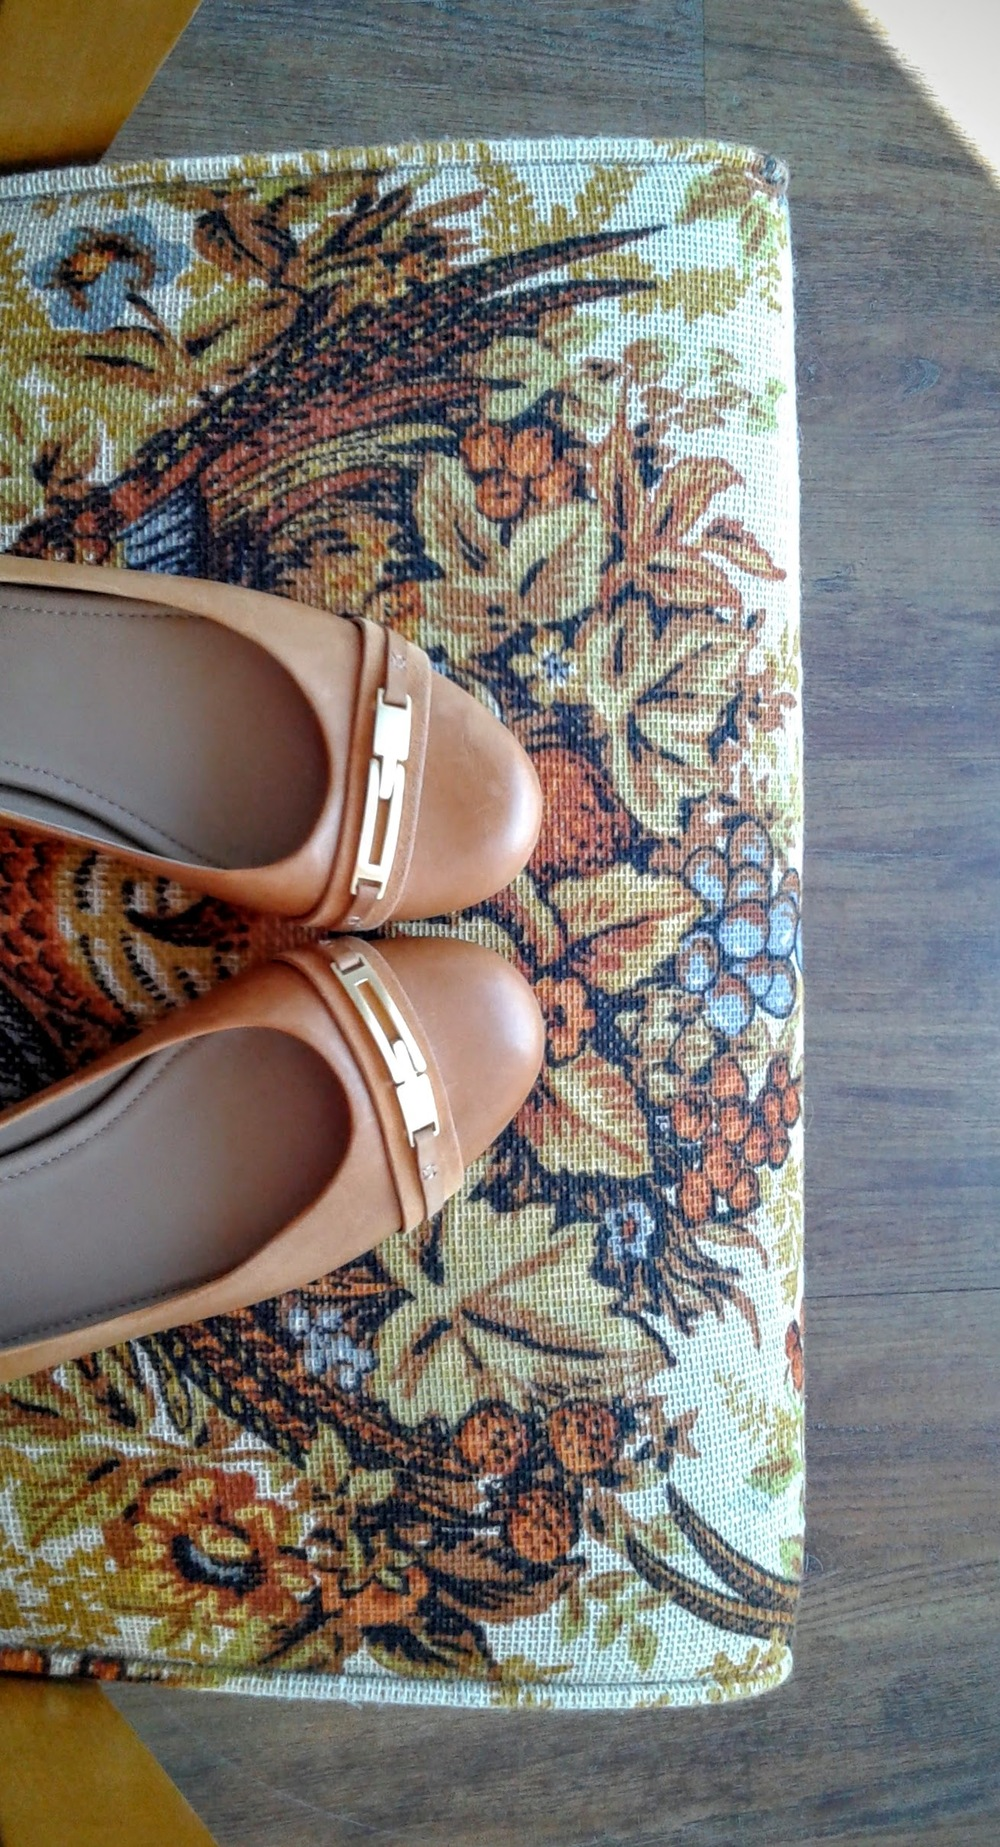 Ecco shoes; S9.5, $48